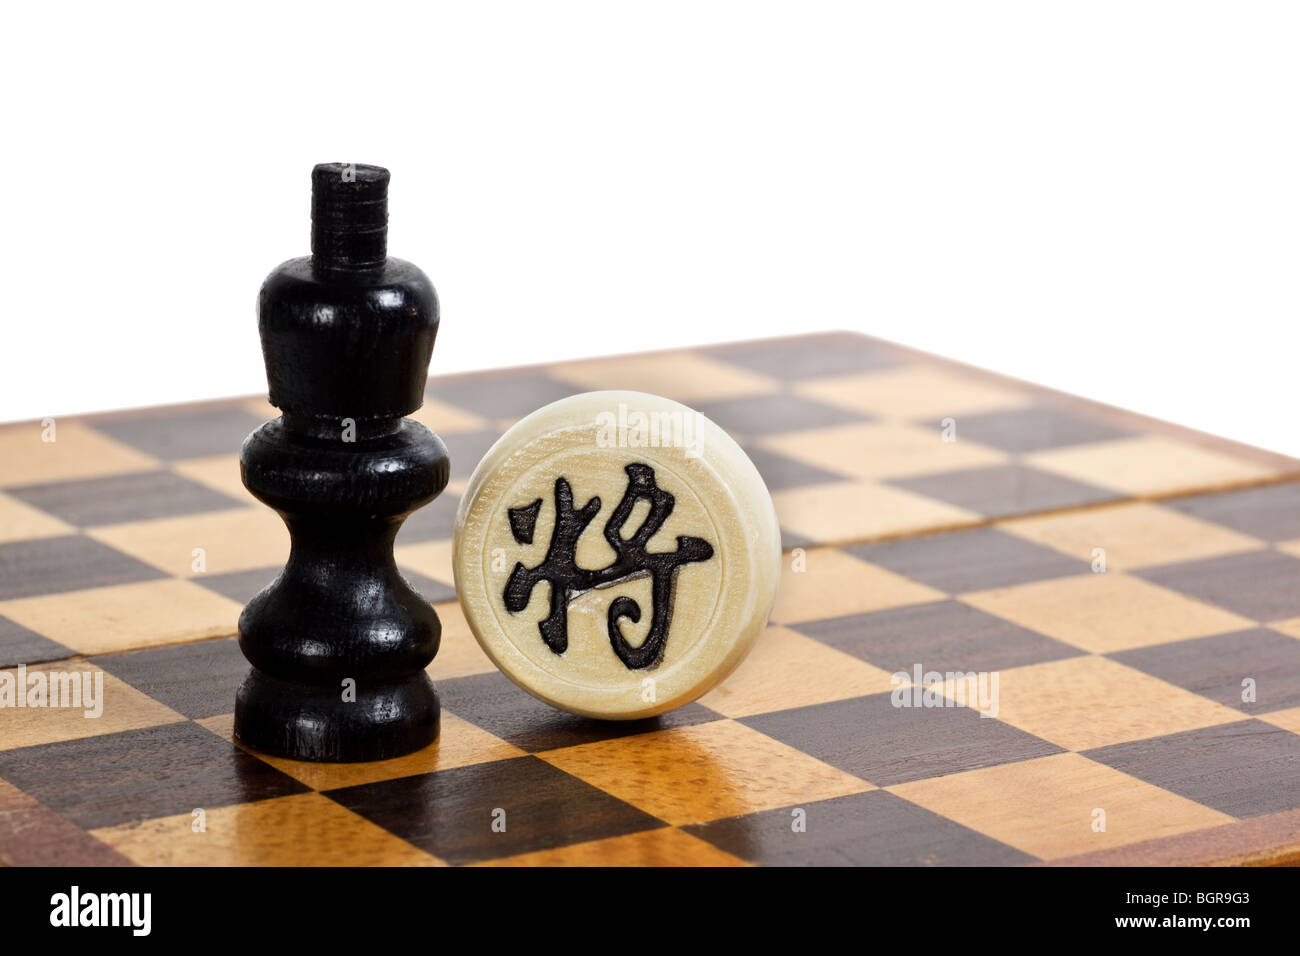 Western and Chinese Chess pieces facing each other depicting cultural difference between East and West - Stock Image